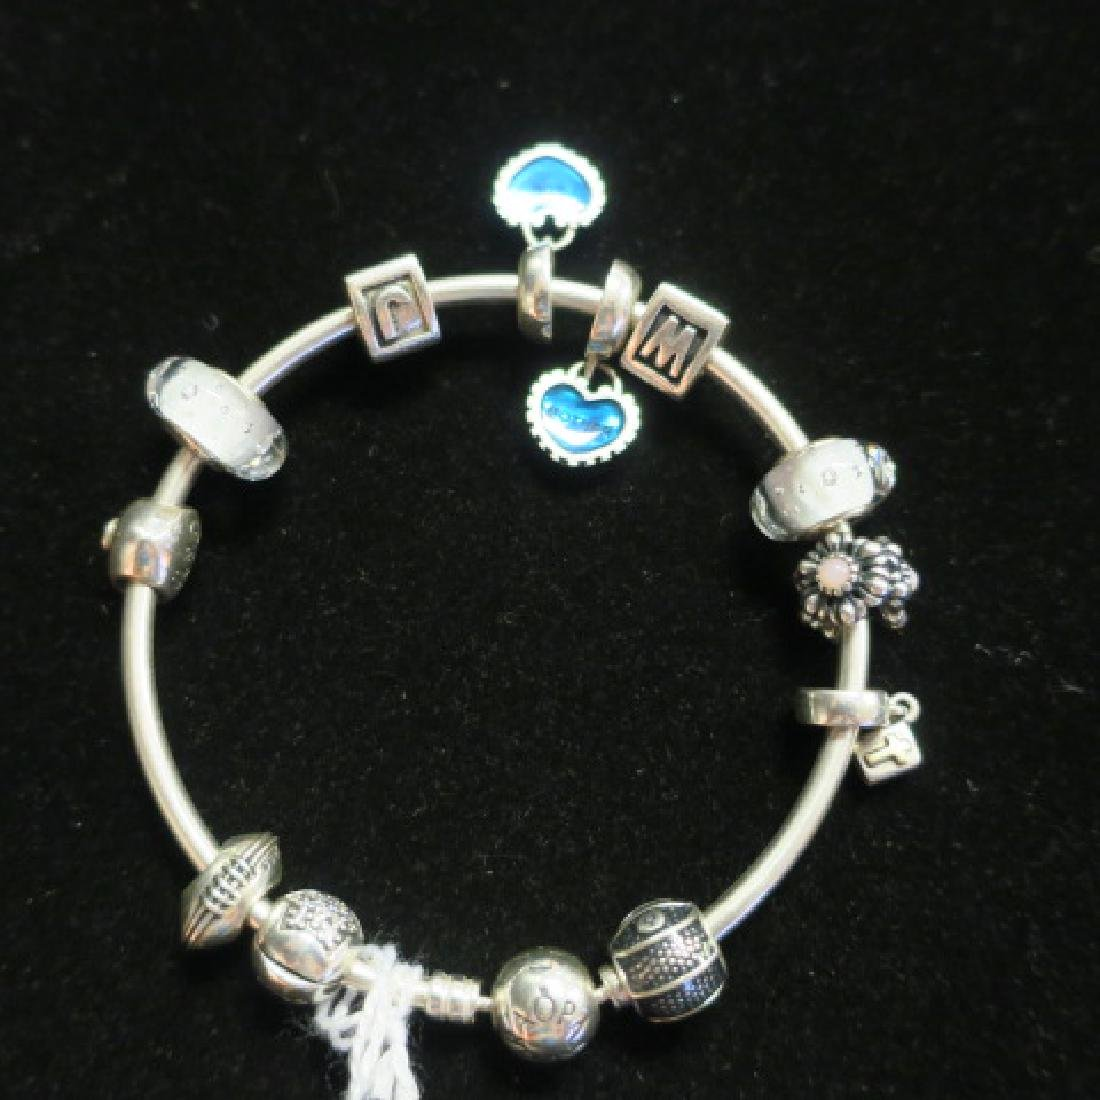 Hand Finished Bangle PANDORA Bracelet with Charms: